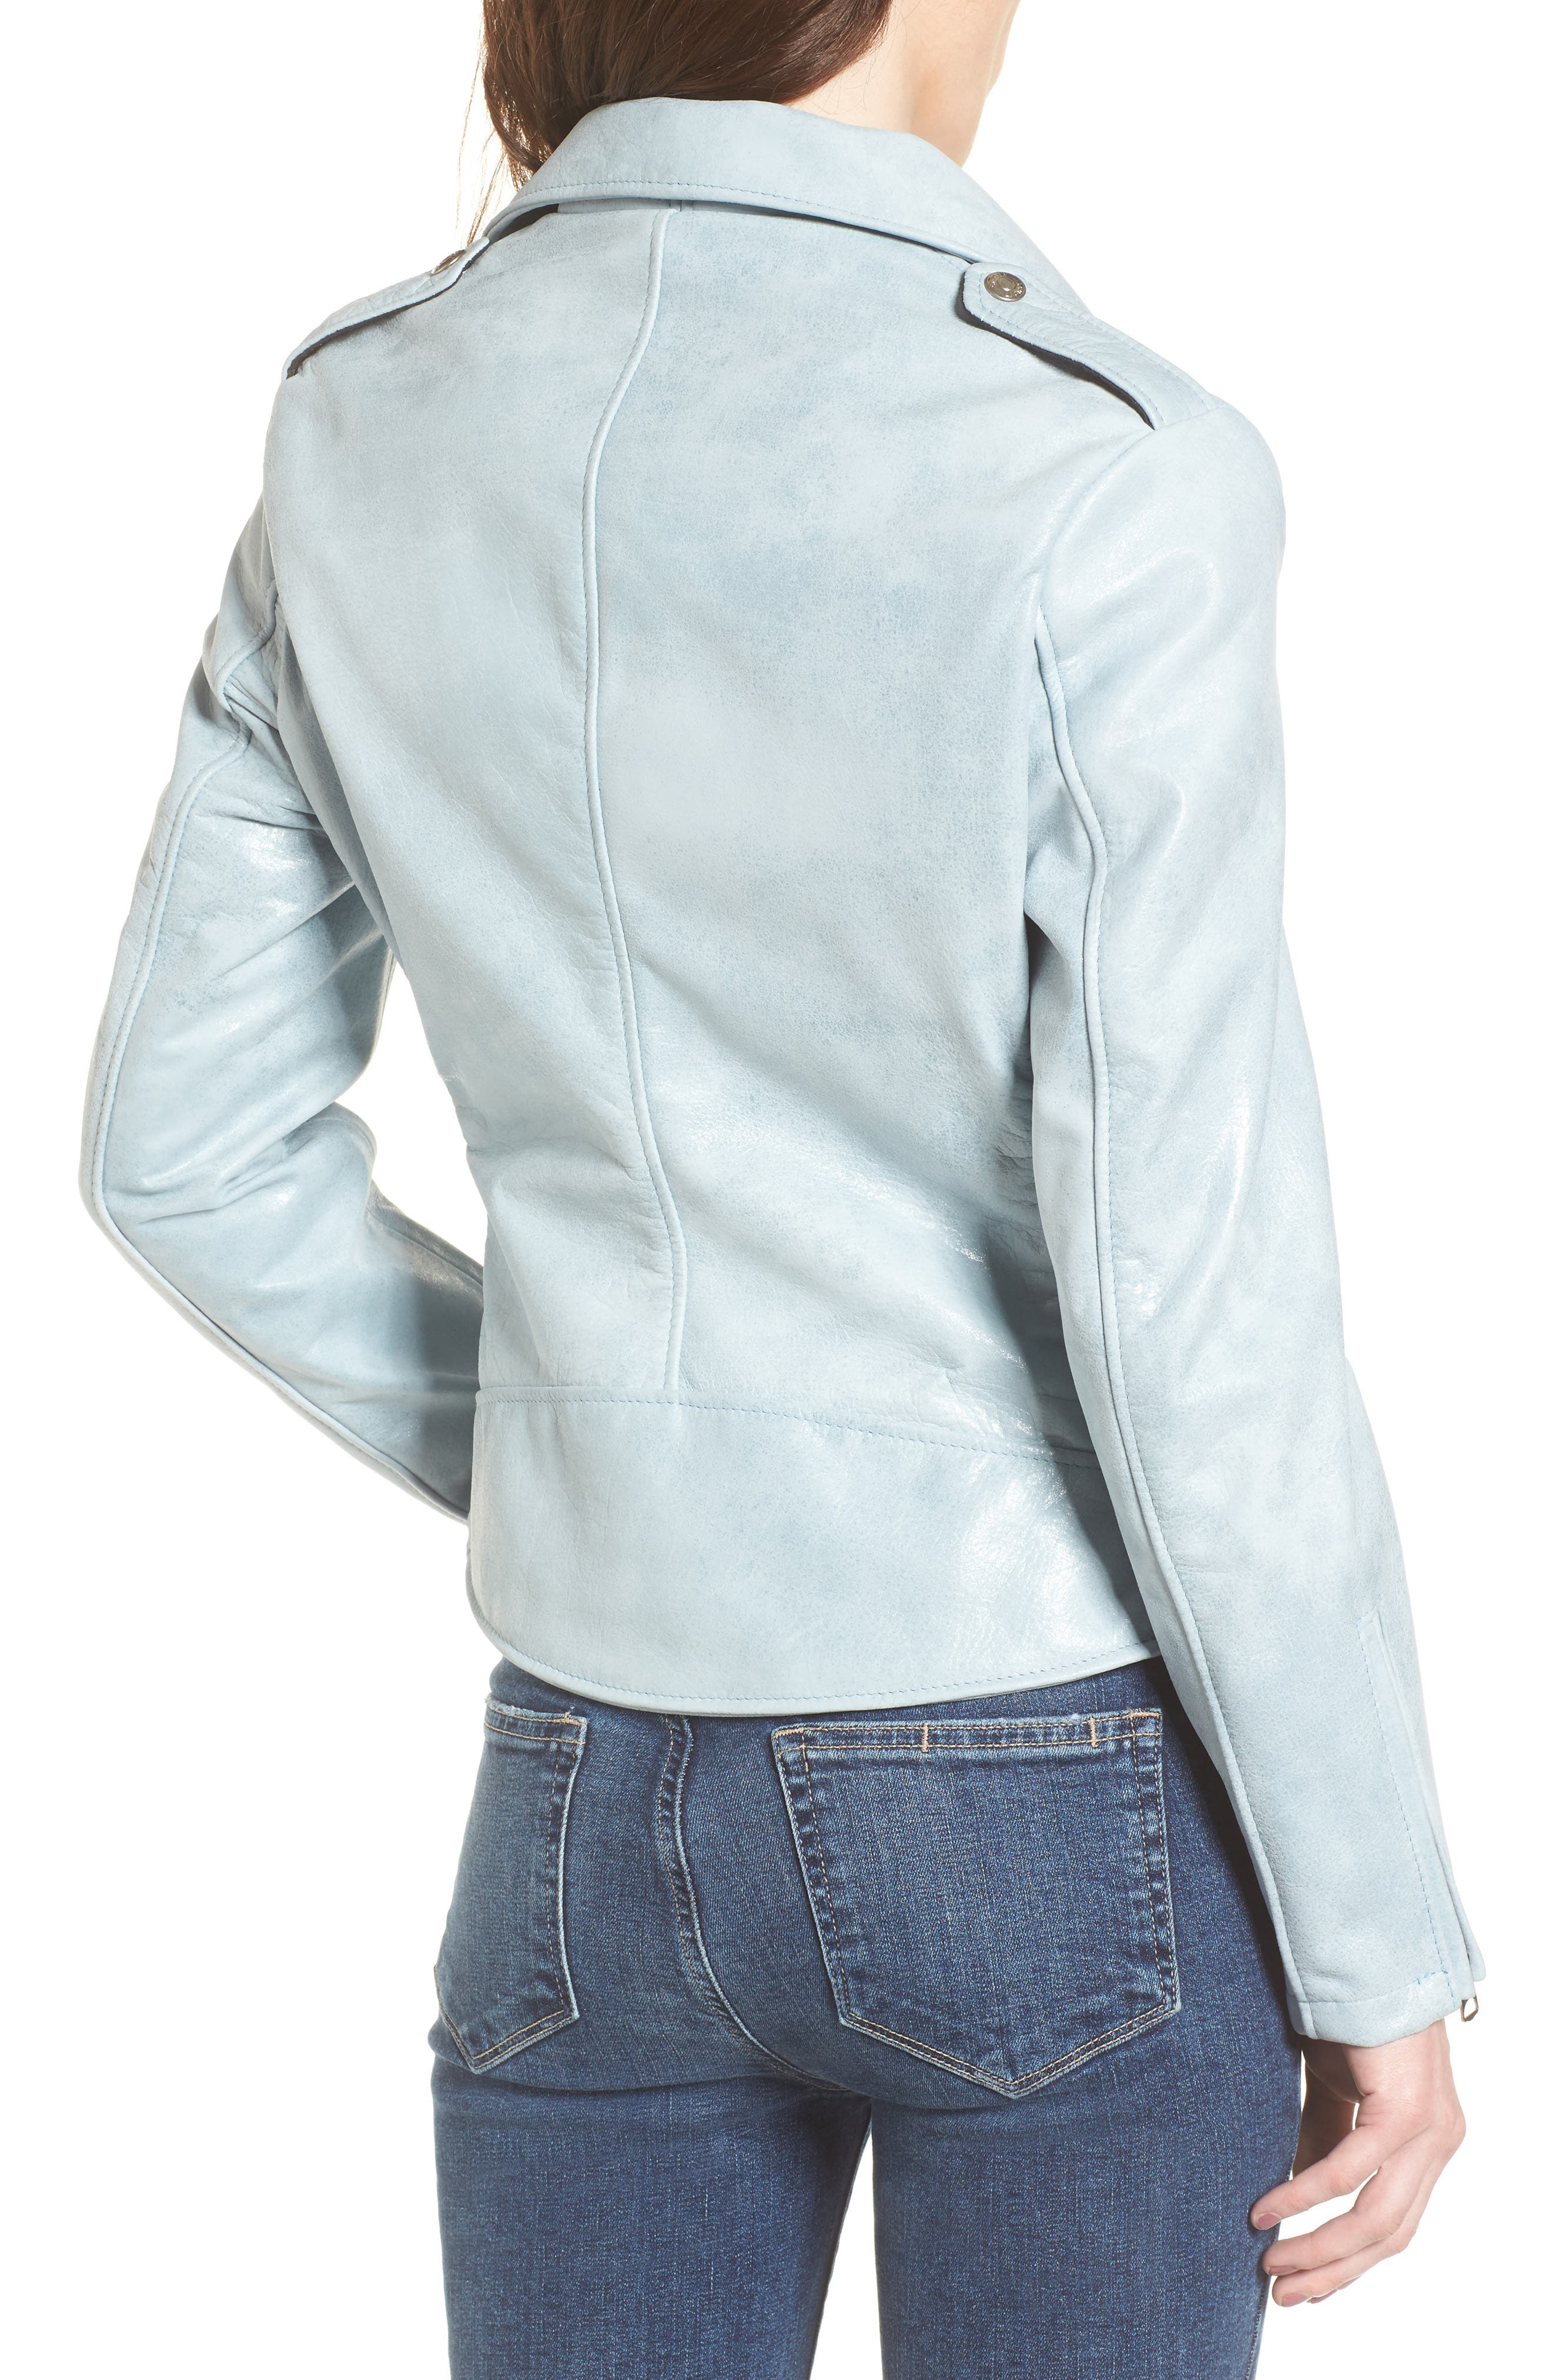 Perfecto Distressed Leather Boyfriend Jacket,                             Alternate thumbnail 5, color,